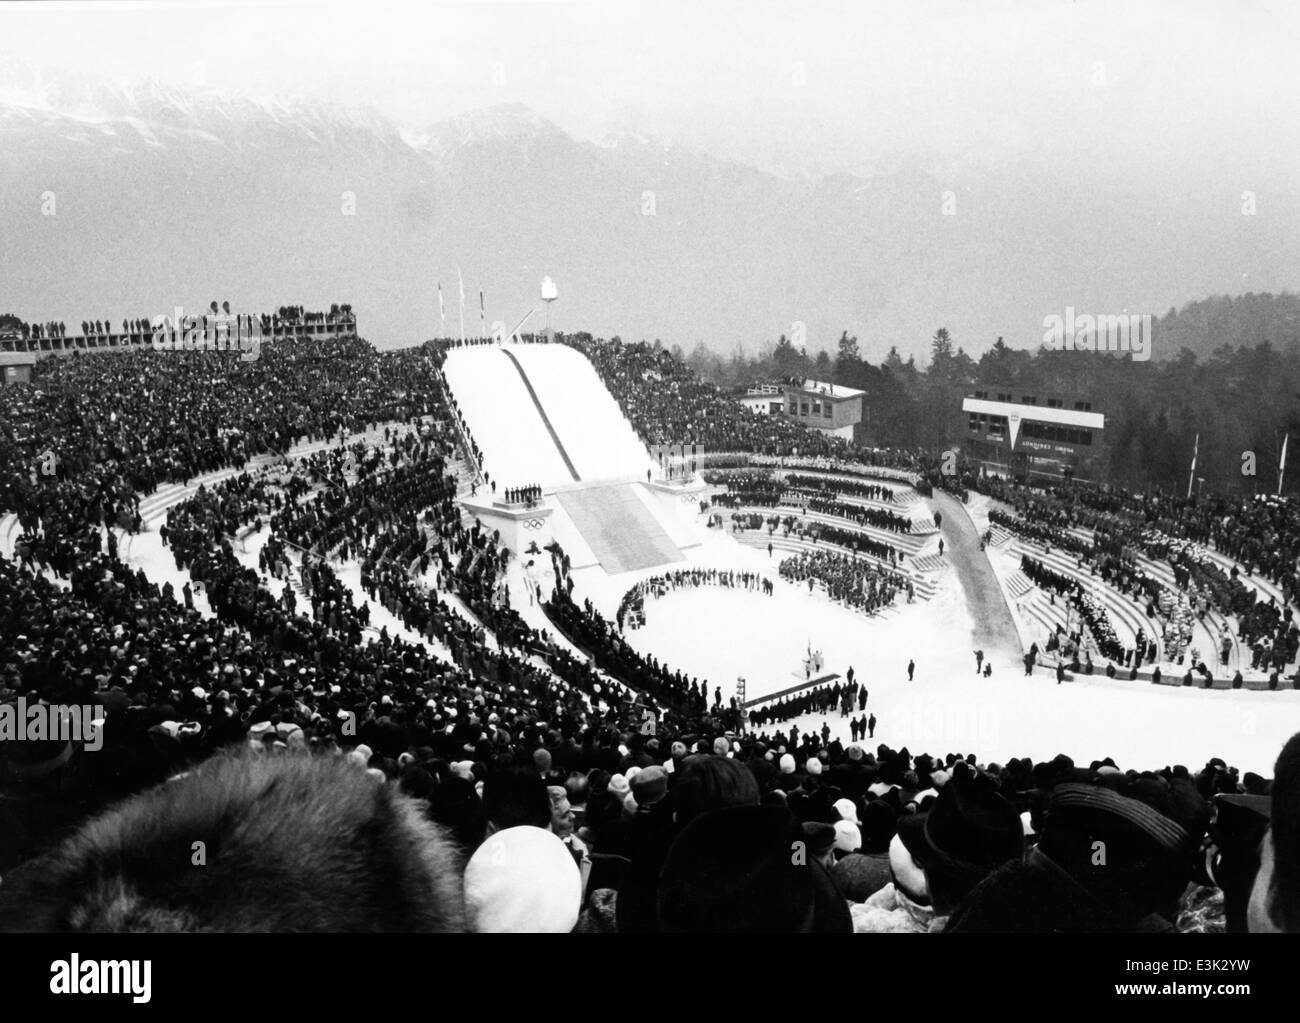 opening ceremony of the IX winter olympic games in innsbruck,1964 - Stock Image